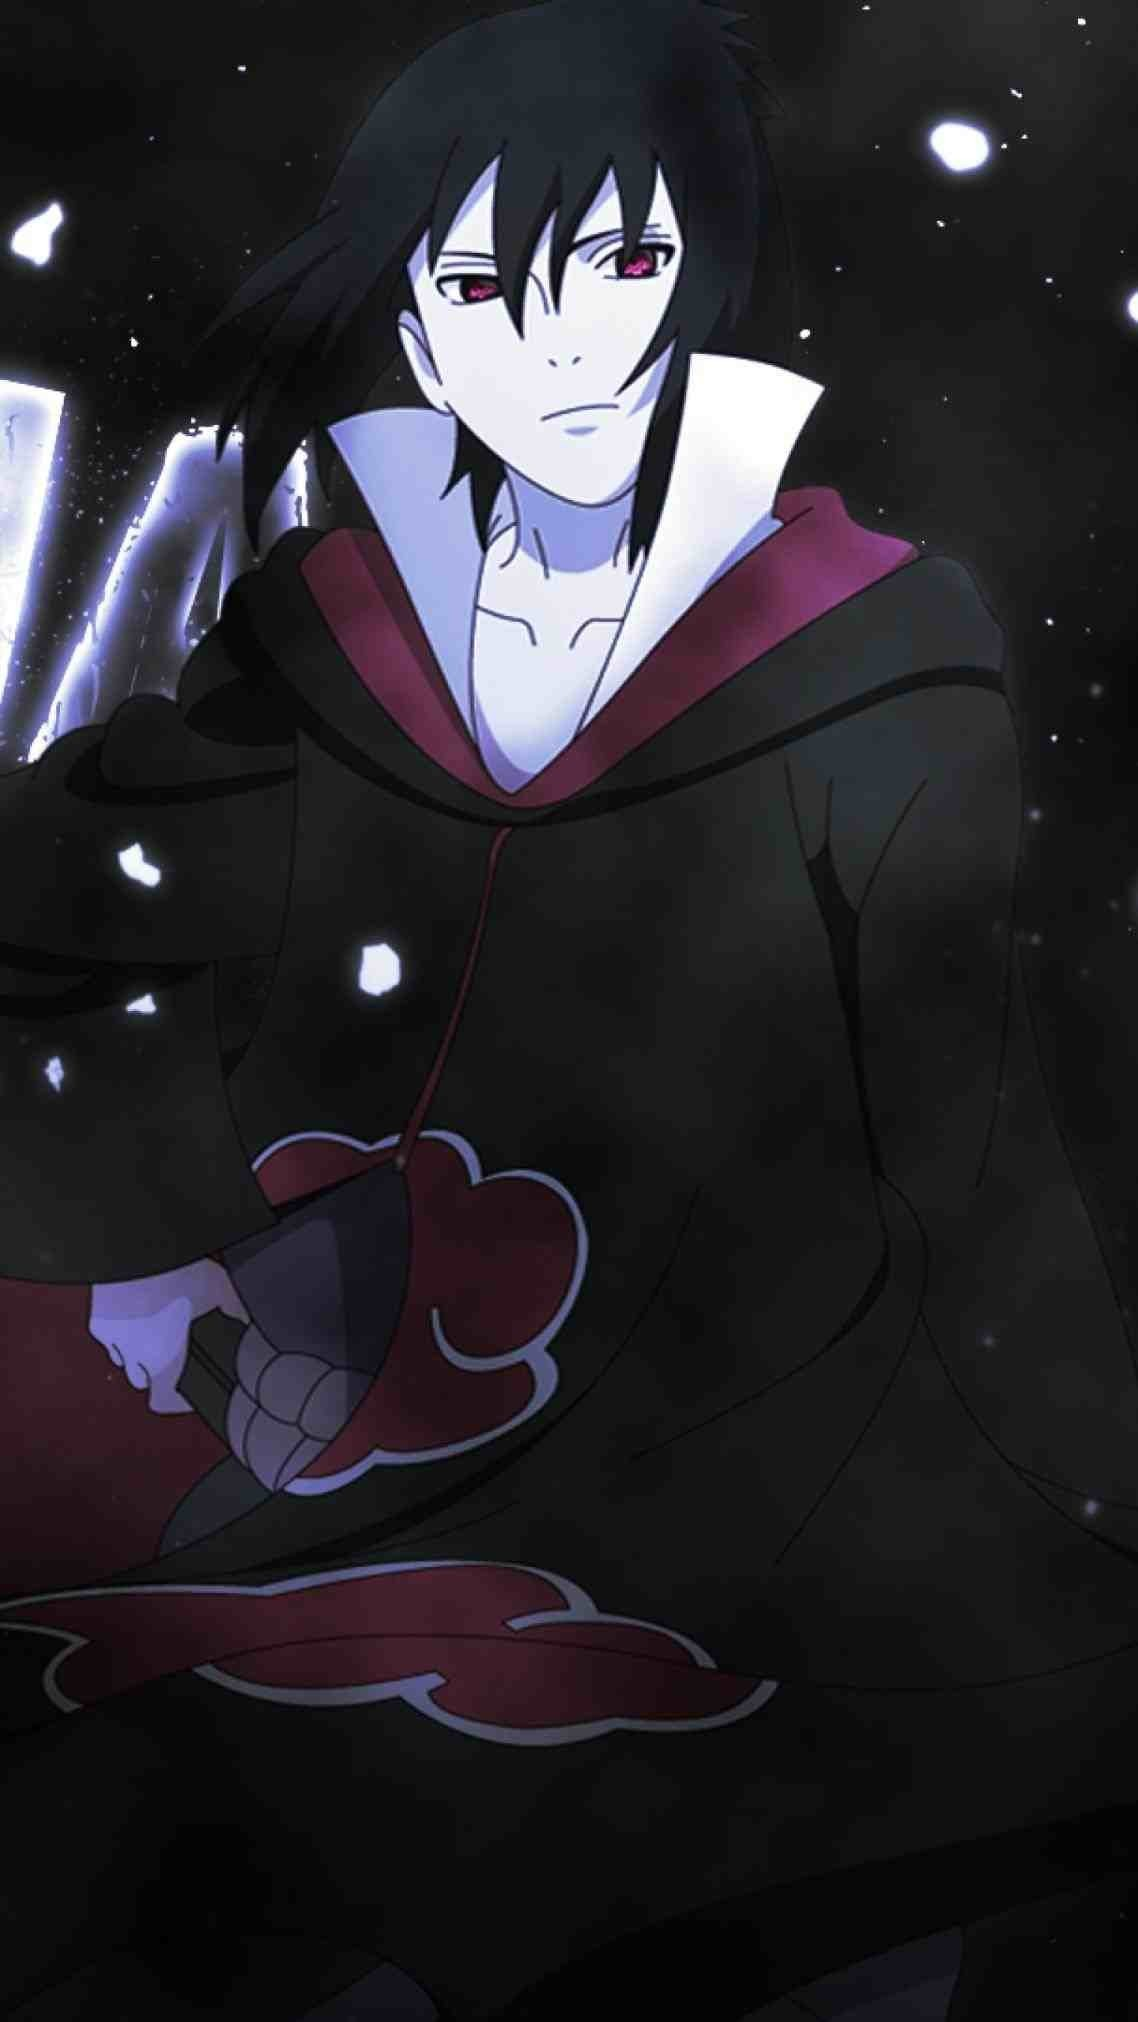 Res: 1138x2022, 1920x1200 Sharingan Eyes Uchiha Madara 72 HD Wallpaper